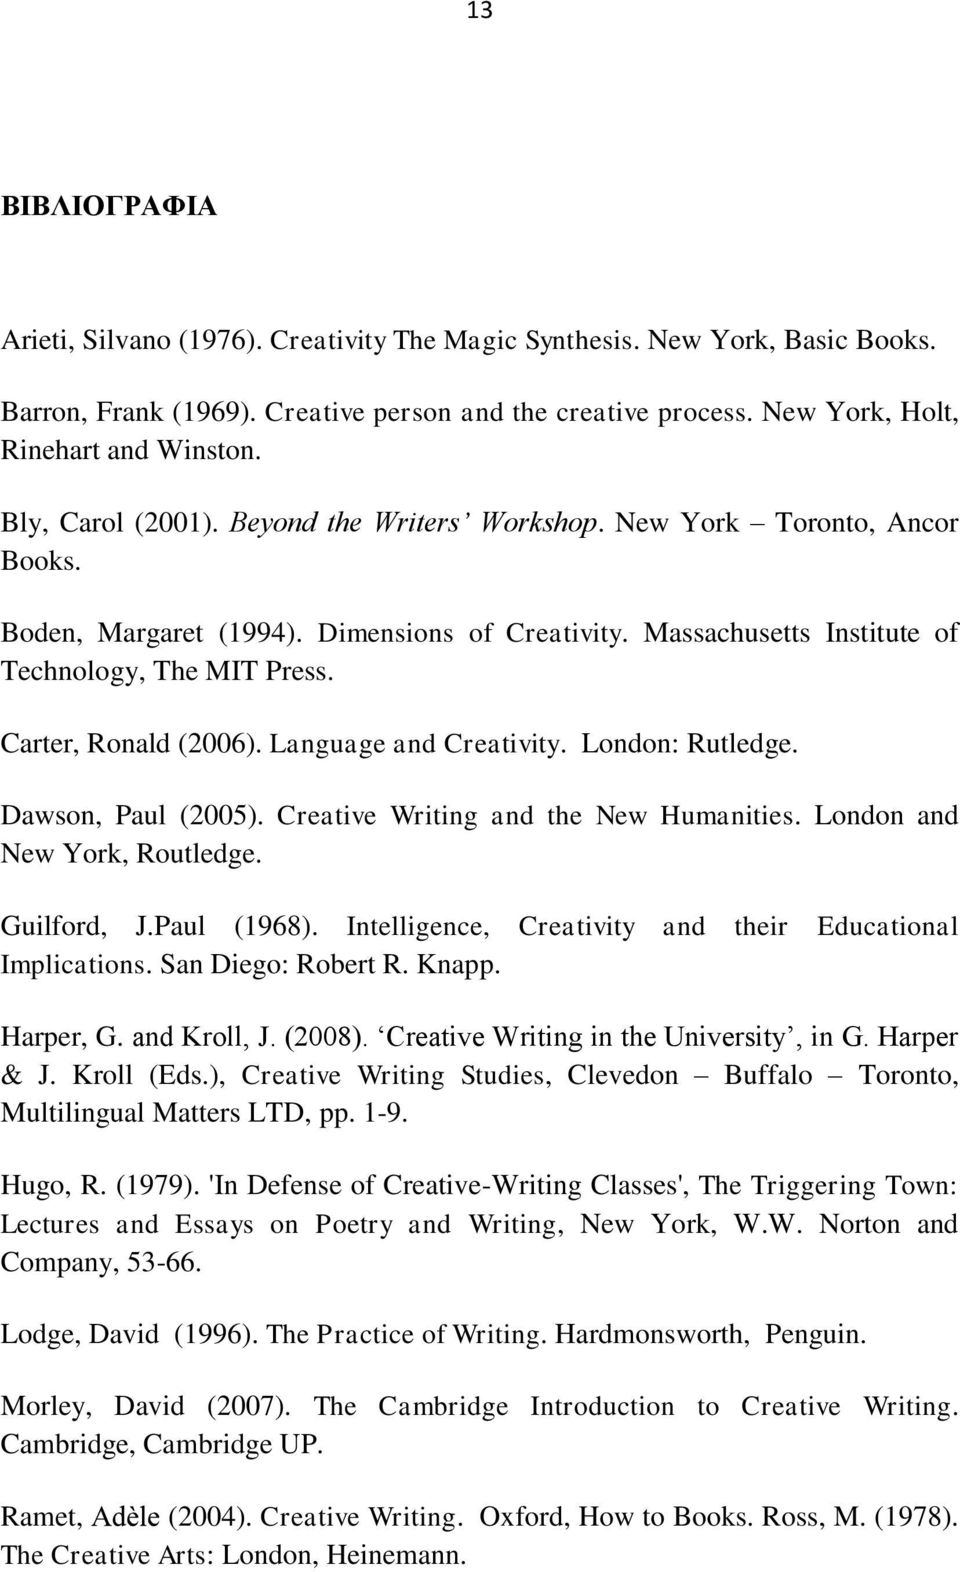 Carter, Ronald (2006). Language and Creativity. London: Rutledge. Dawson, Paul (2005). Creative Writing and the New Humanities. London and New York, Routledge. Guilford, J.Paul (1968).